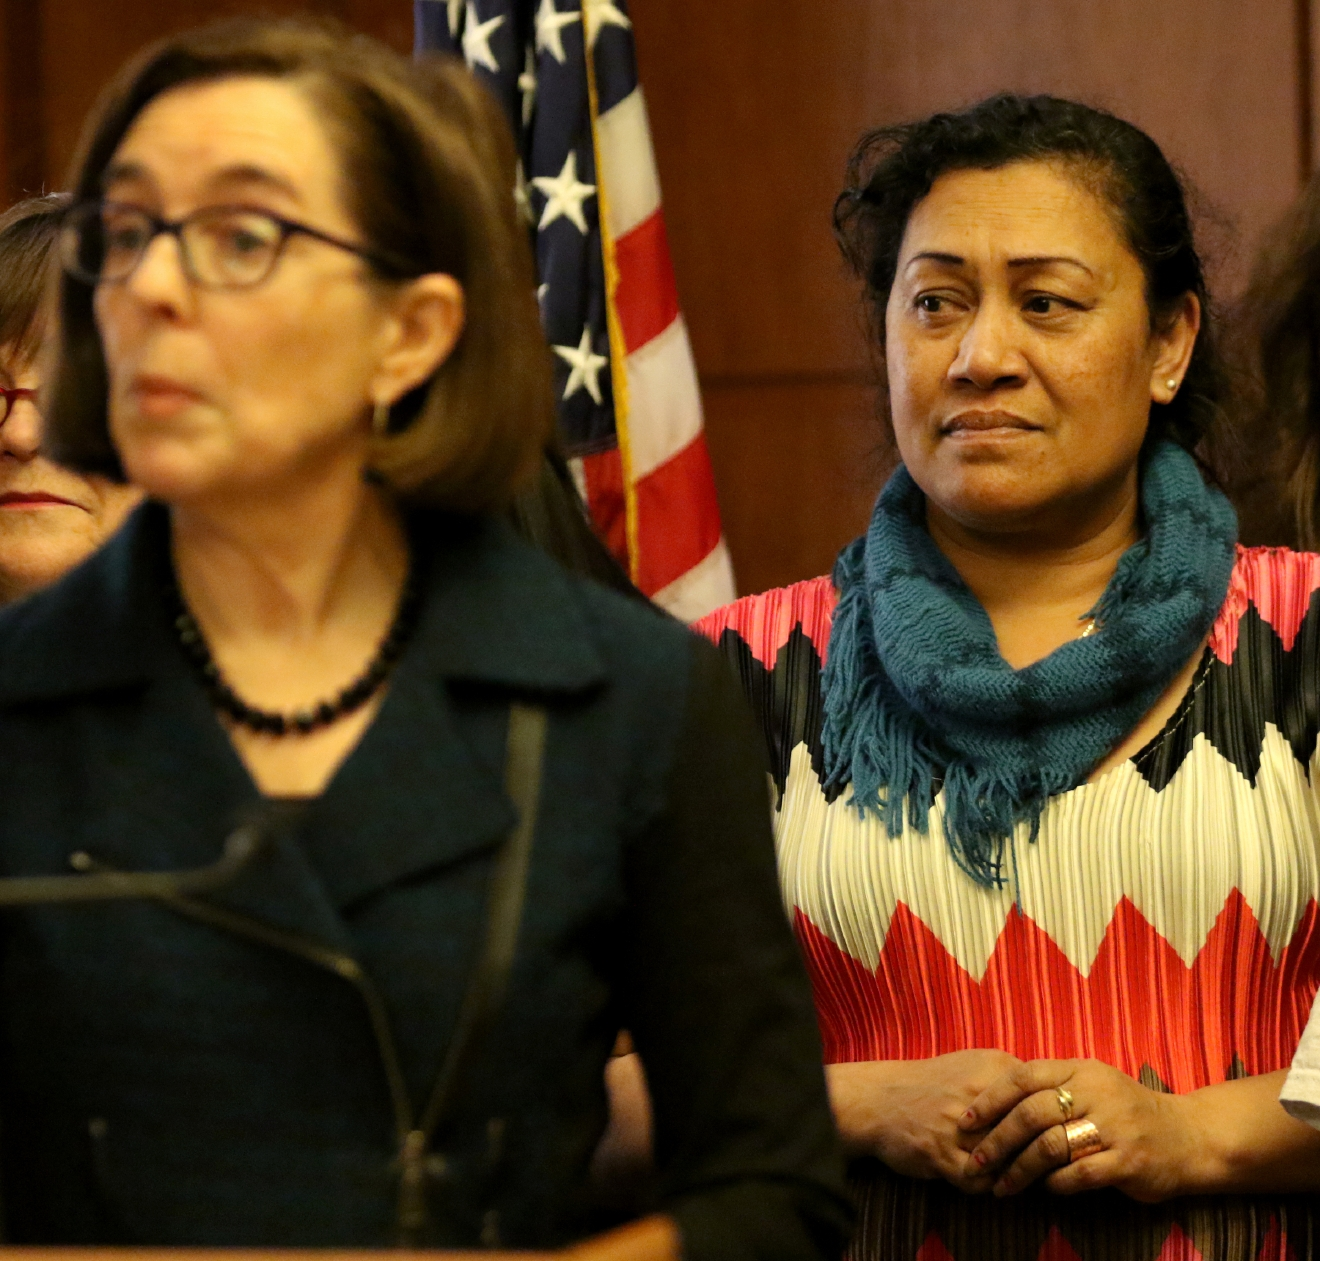 Kasil Kapriel, right, who currently makes $9.25 an hour, stands behind Gov. Kate Brown before she signs Senate Bill 1532, increasing Oregon's minimum wage according to a tiered system, at the State Capitol in Salem on Wednesday, March 2, 2016. PortlandÂ?s minimum will rise to $14.75 by 2022, suburban areas to $13.50 and rural areas to $12.50. The tiered approach is based on economic factors.  (Anna Reed/Statesman-Journal via AP) MANDATORY CREDIT